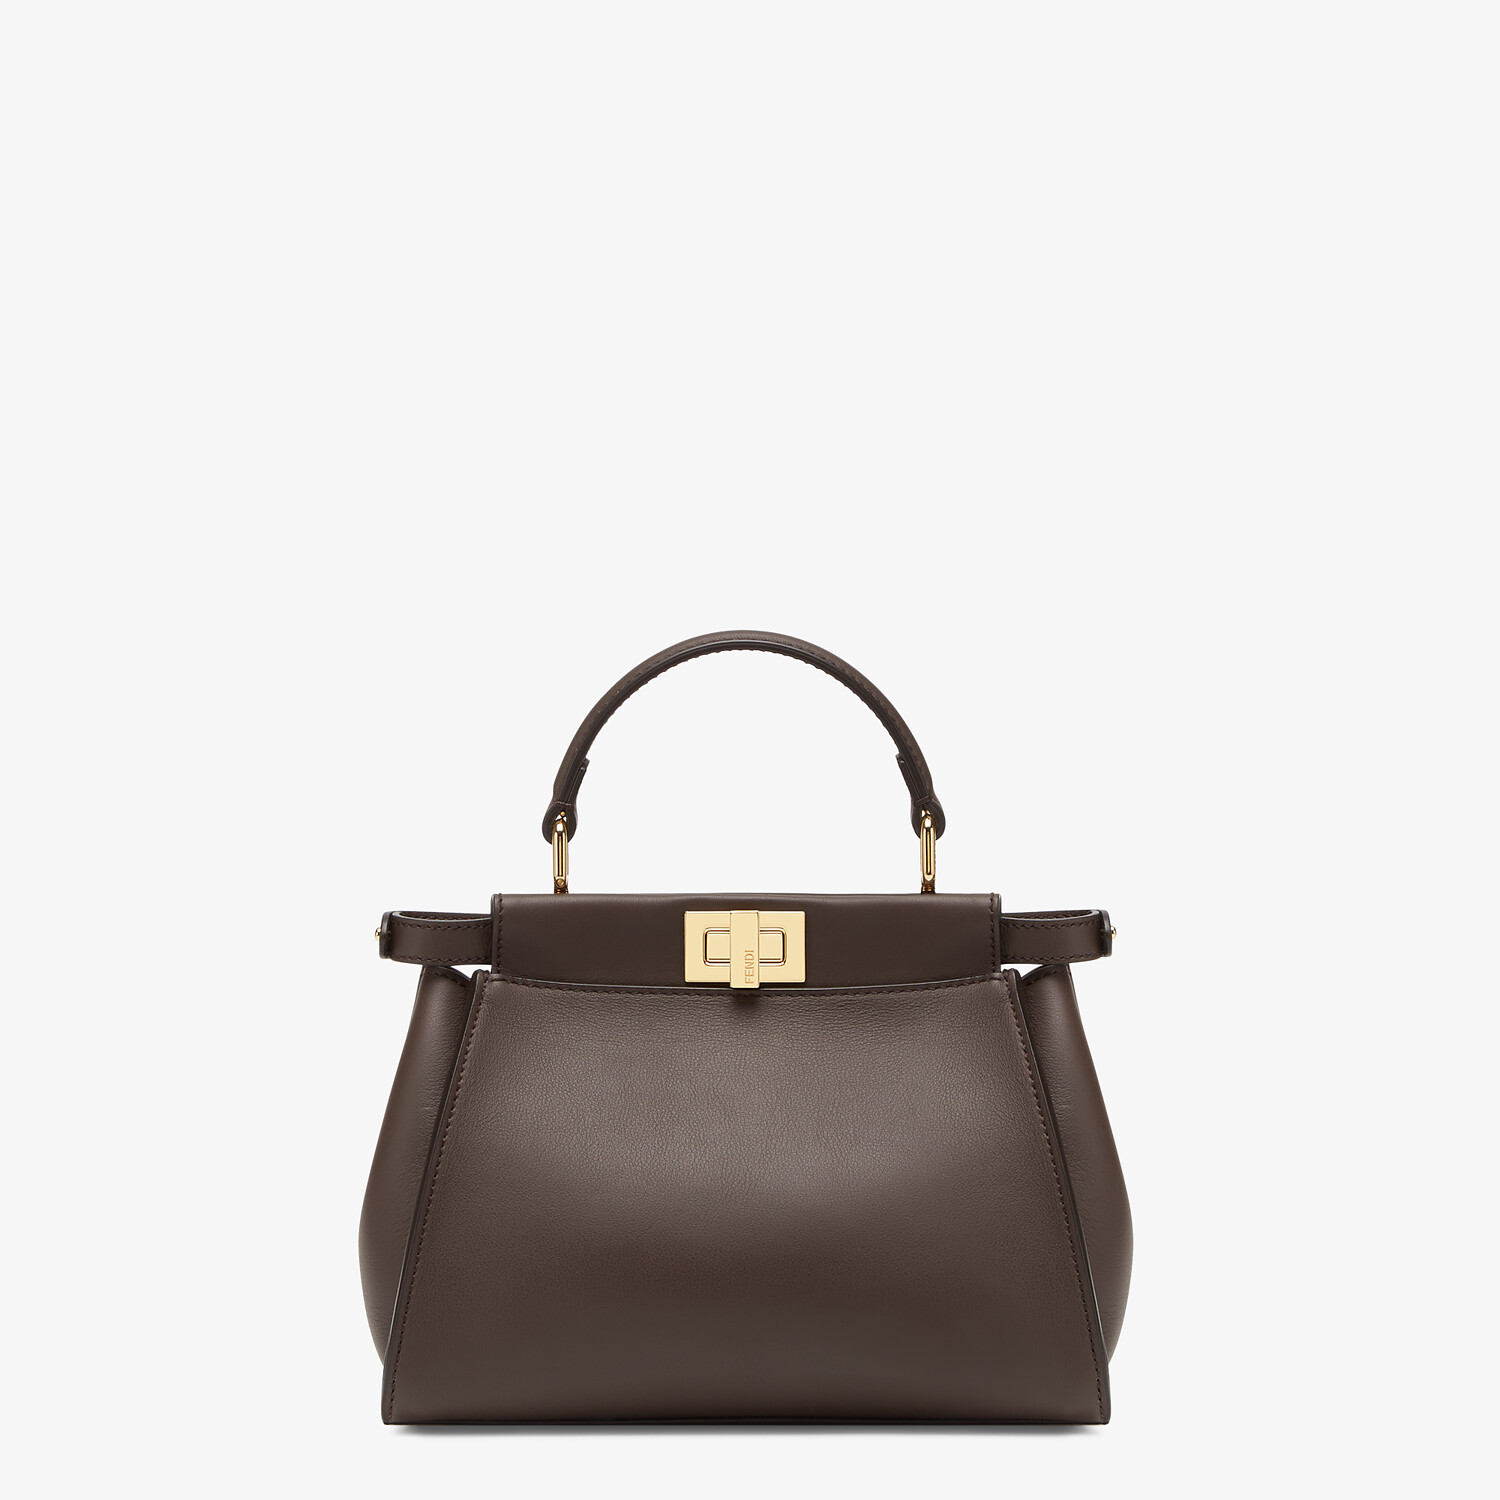 FENDI PEEKABOO ICONIC MINI -  Brown leather bag - view 3 detail